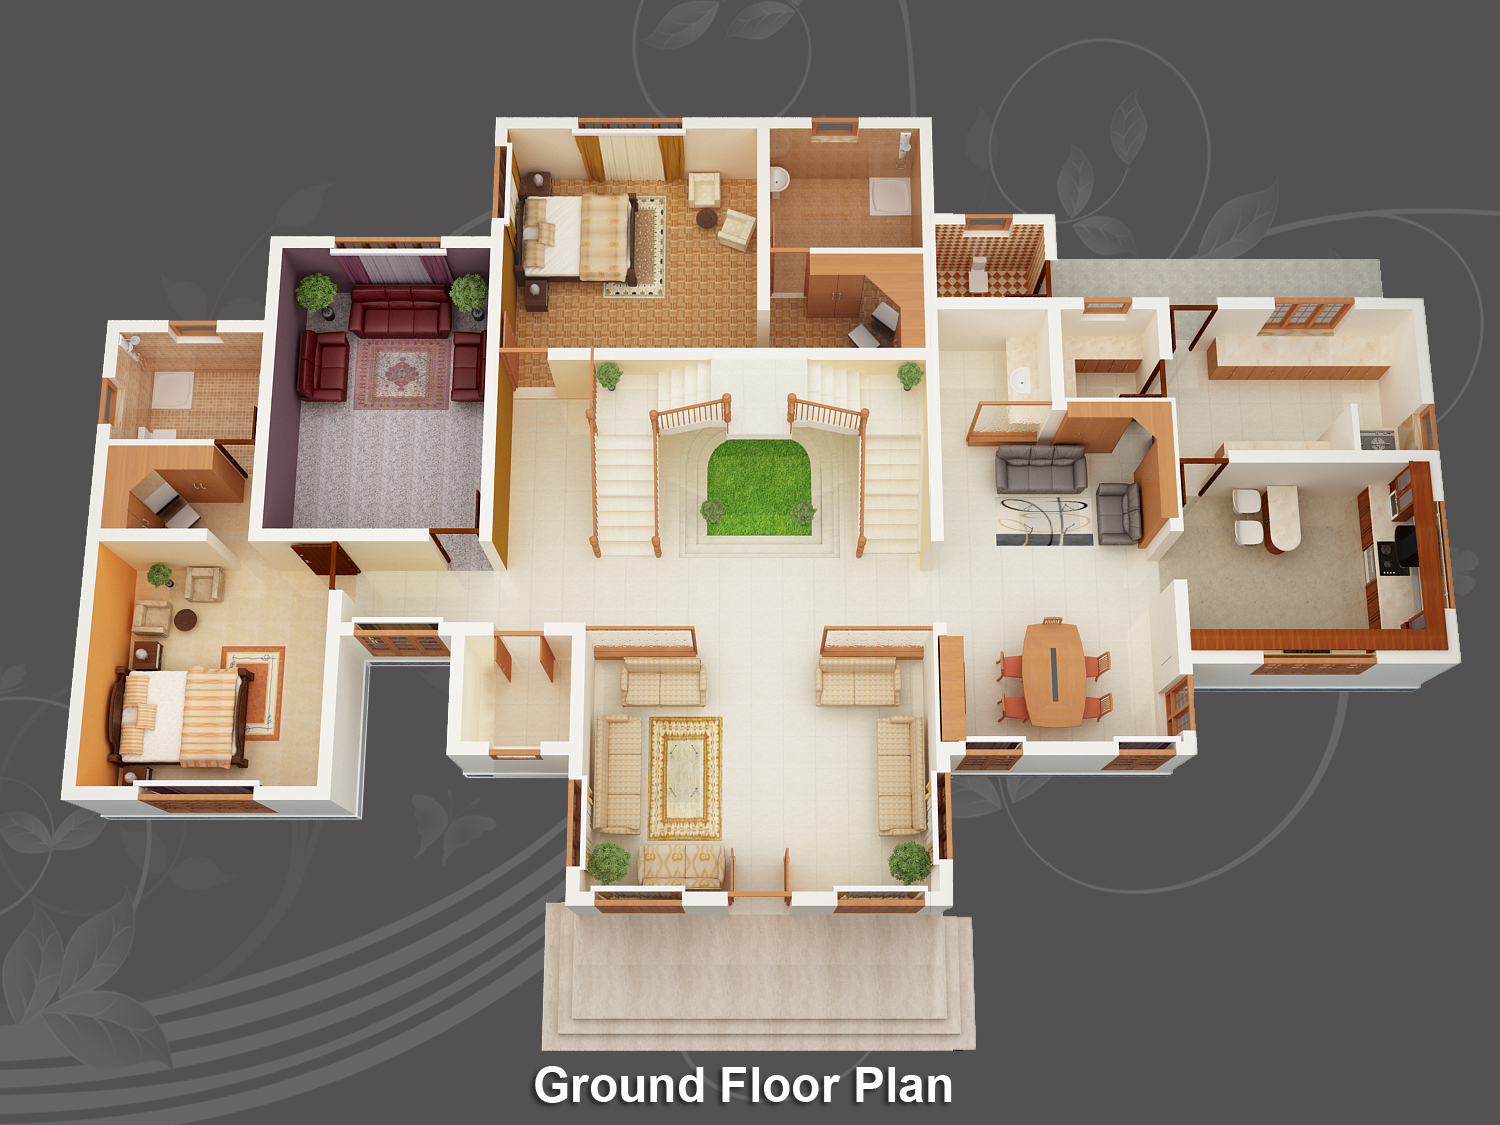 Evens construction pvt ltd 3d house plan 20 05 2011 3d house designing